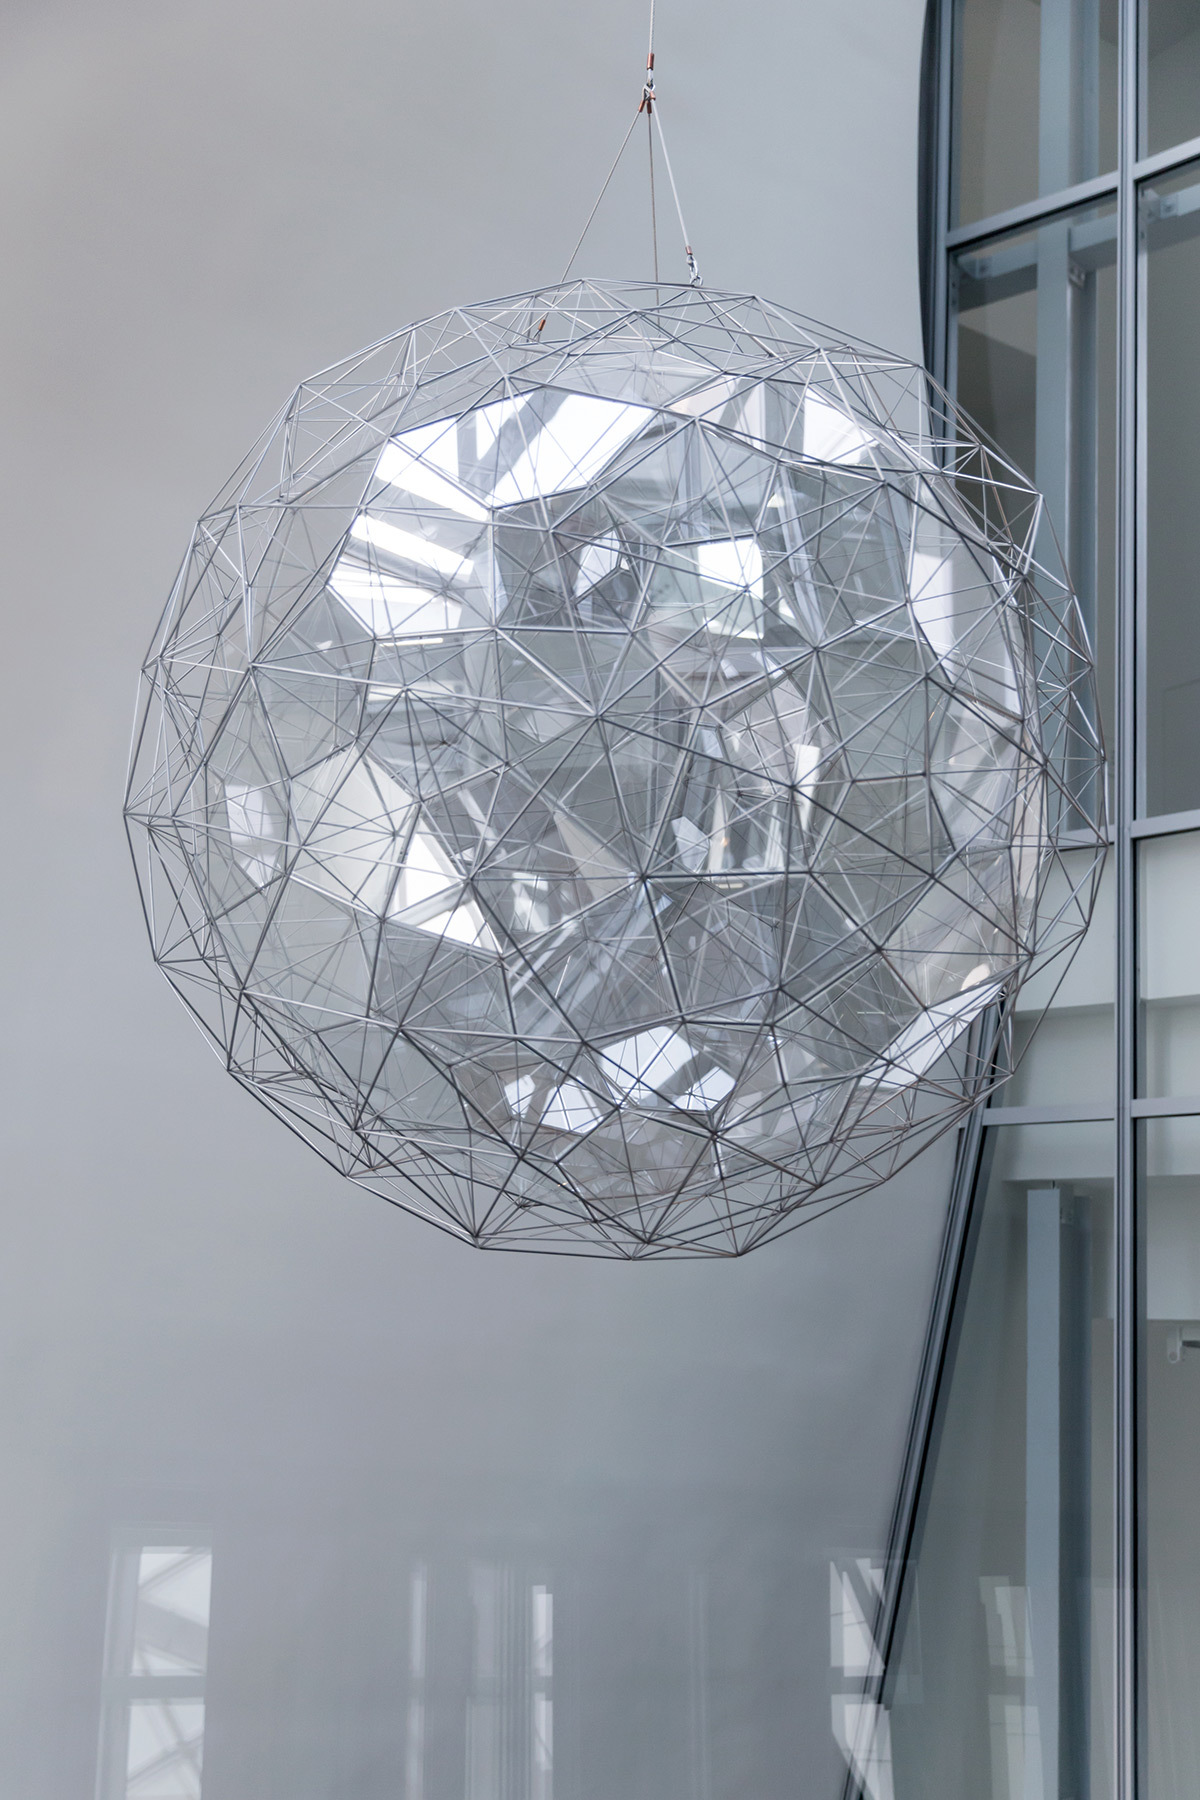 Olafur Eliasson - Dusk particule, 2014 - Fondation-Louis-Vuitton, Paris, France - Photo : Iwan Baan